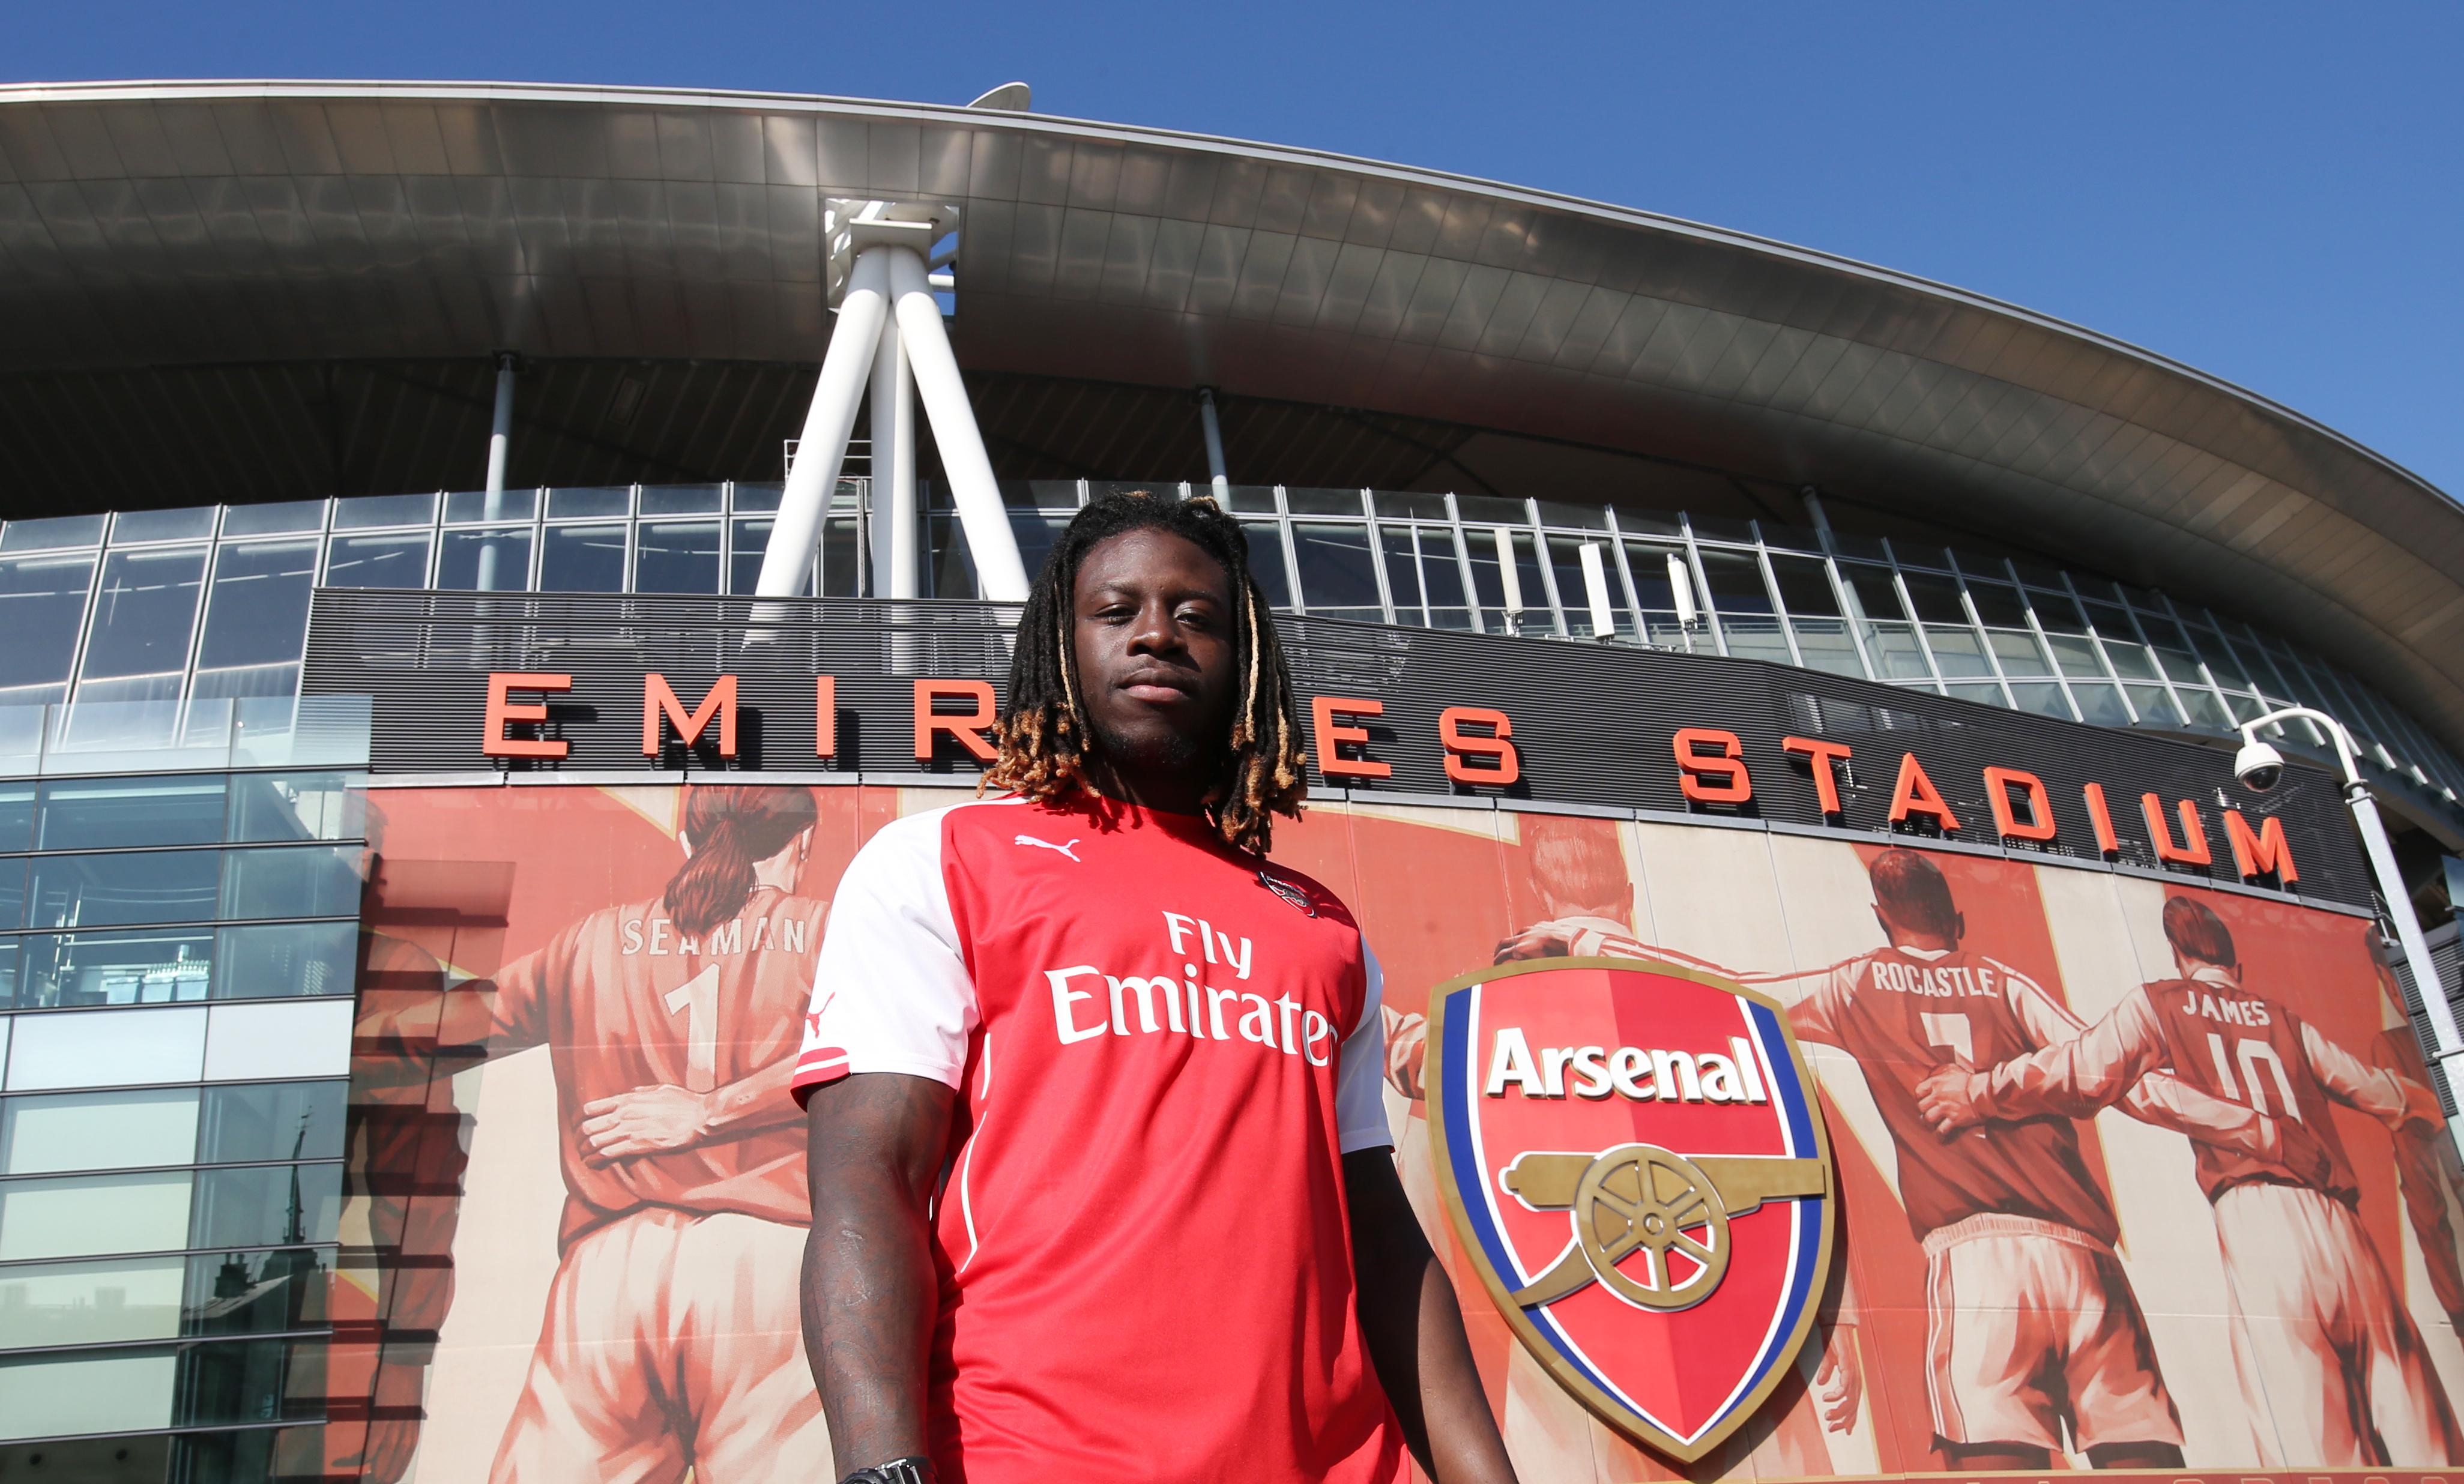 London-born Ajayi dons the red and white of his beloved Arsenal